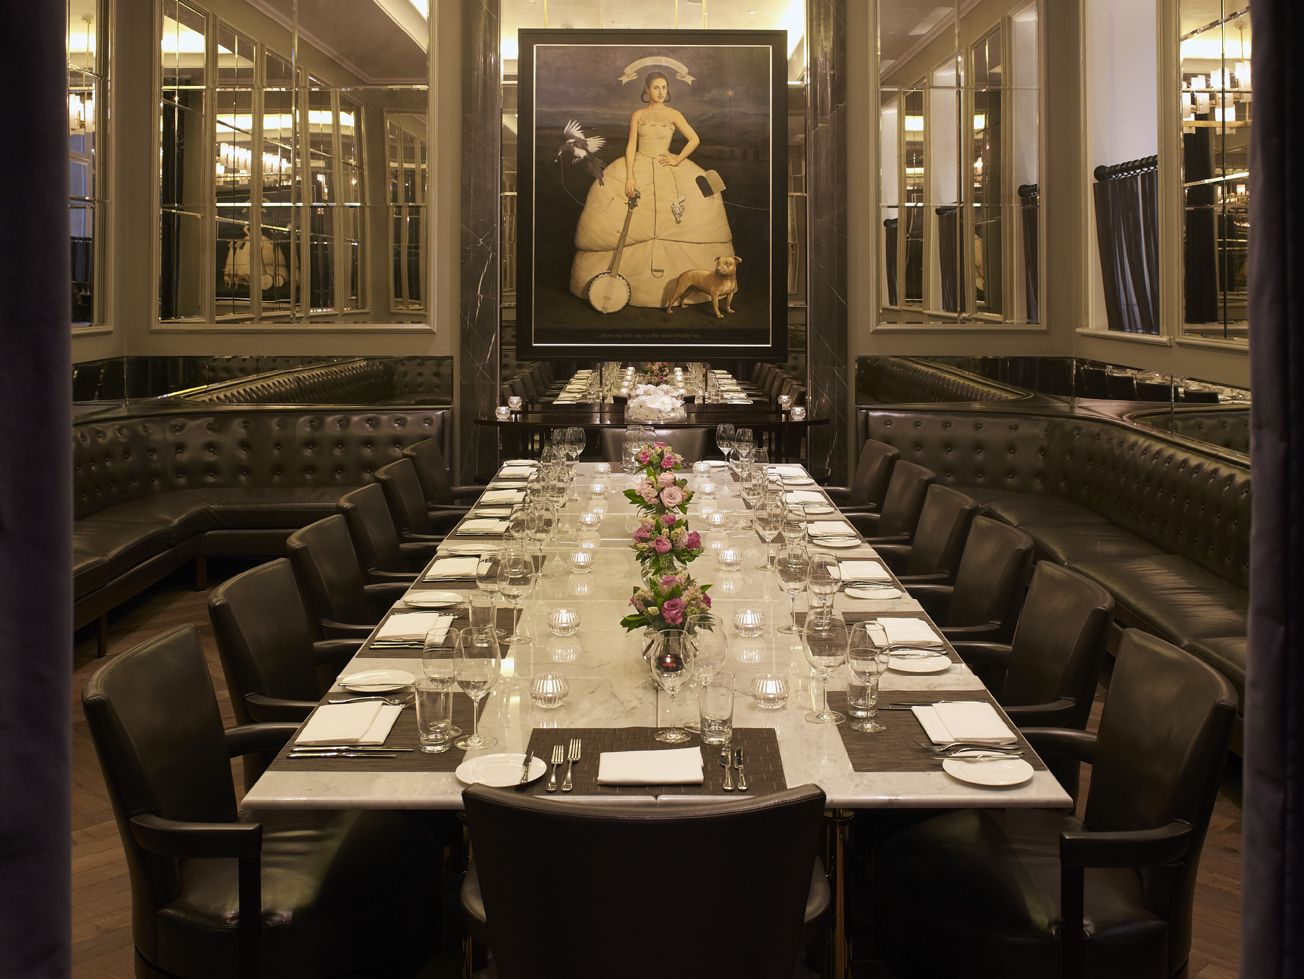 The Northall Private Dining Room Seats Up To Twenty At One Table Custom Dallas Restaurants With Private Dining Rooms Decorating Inspiration